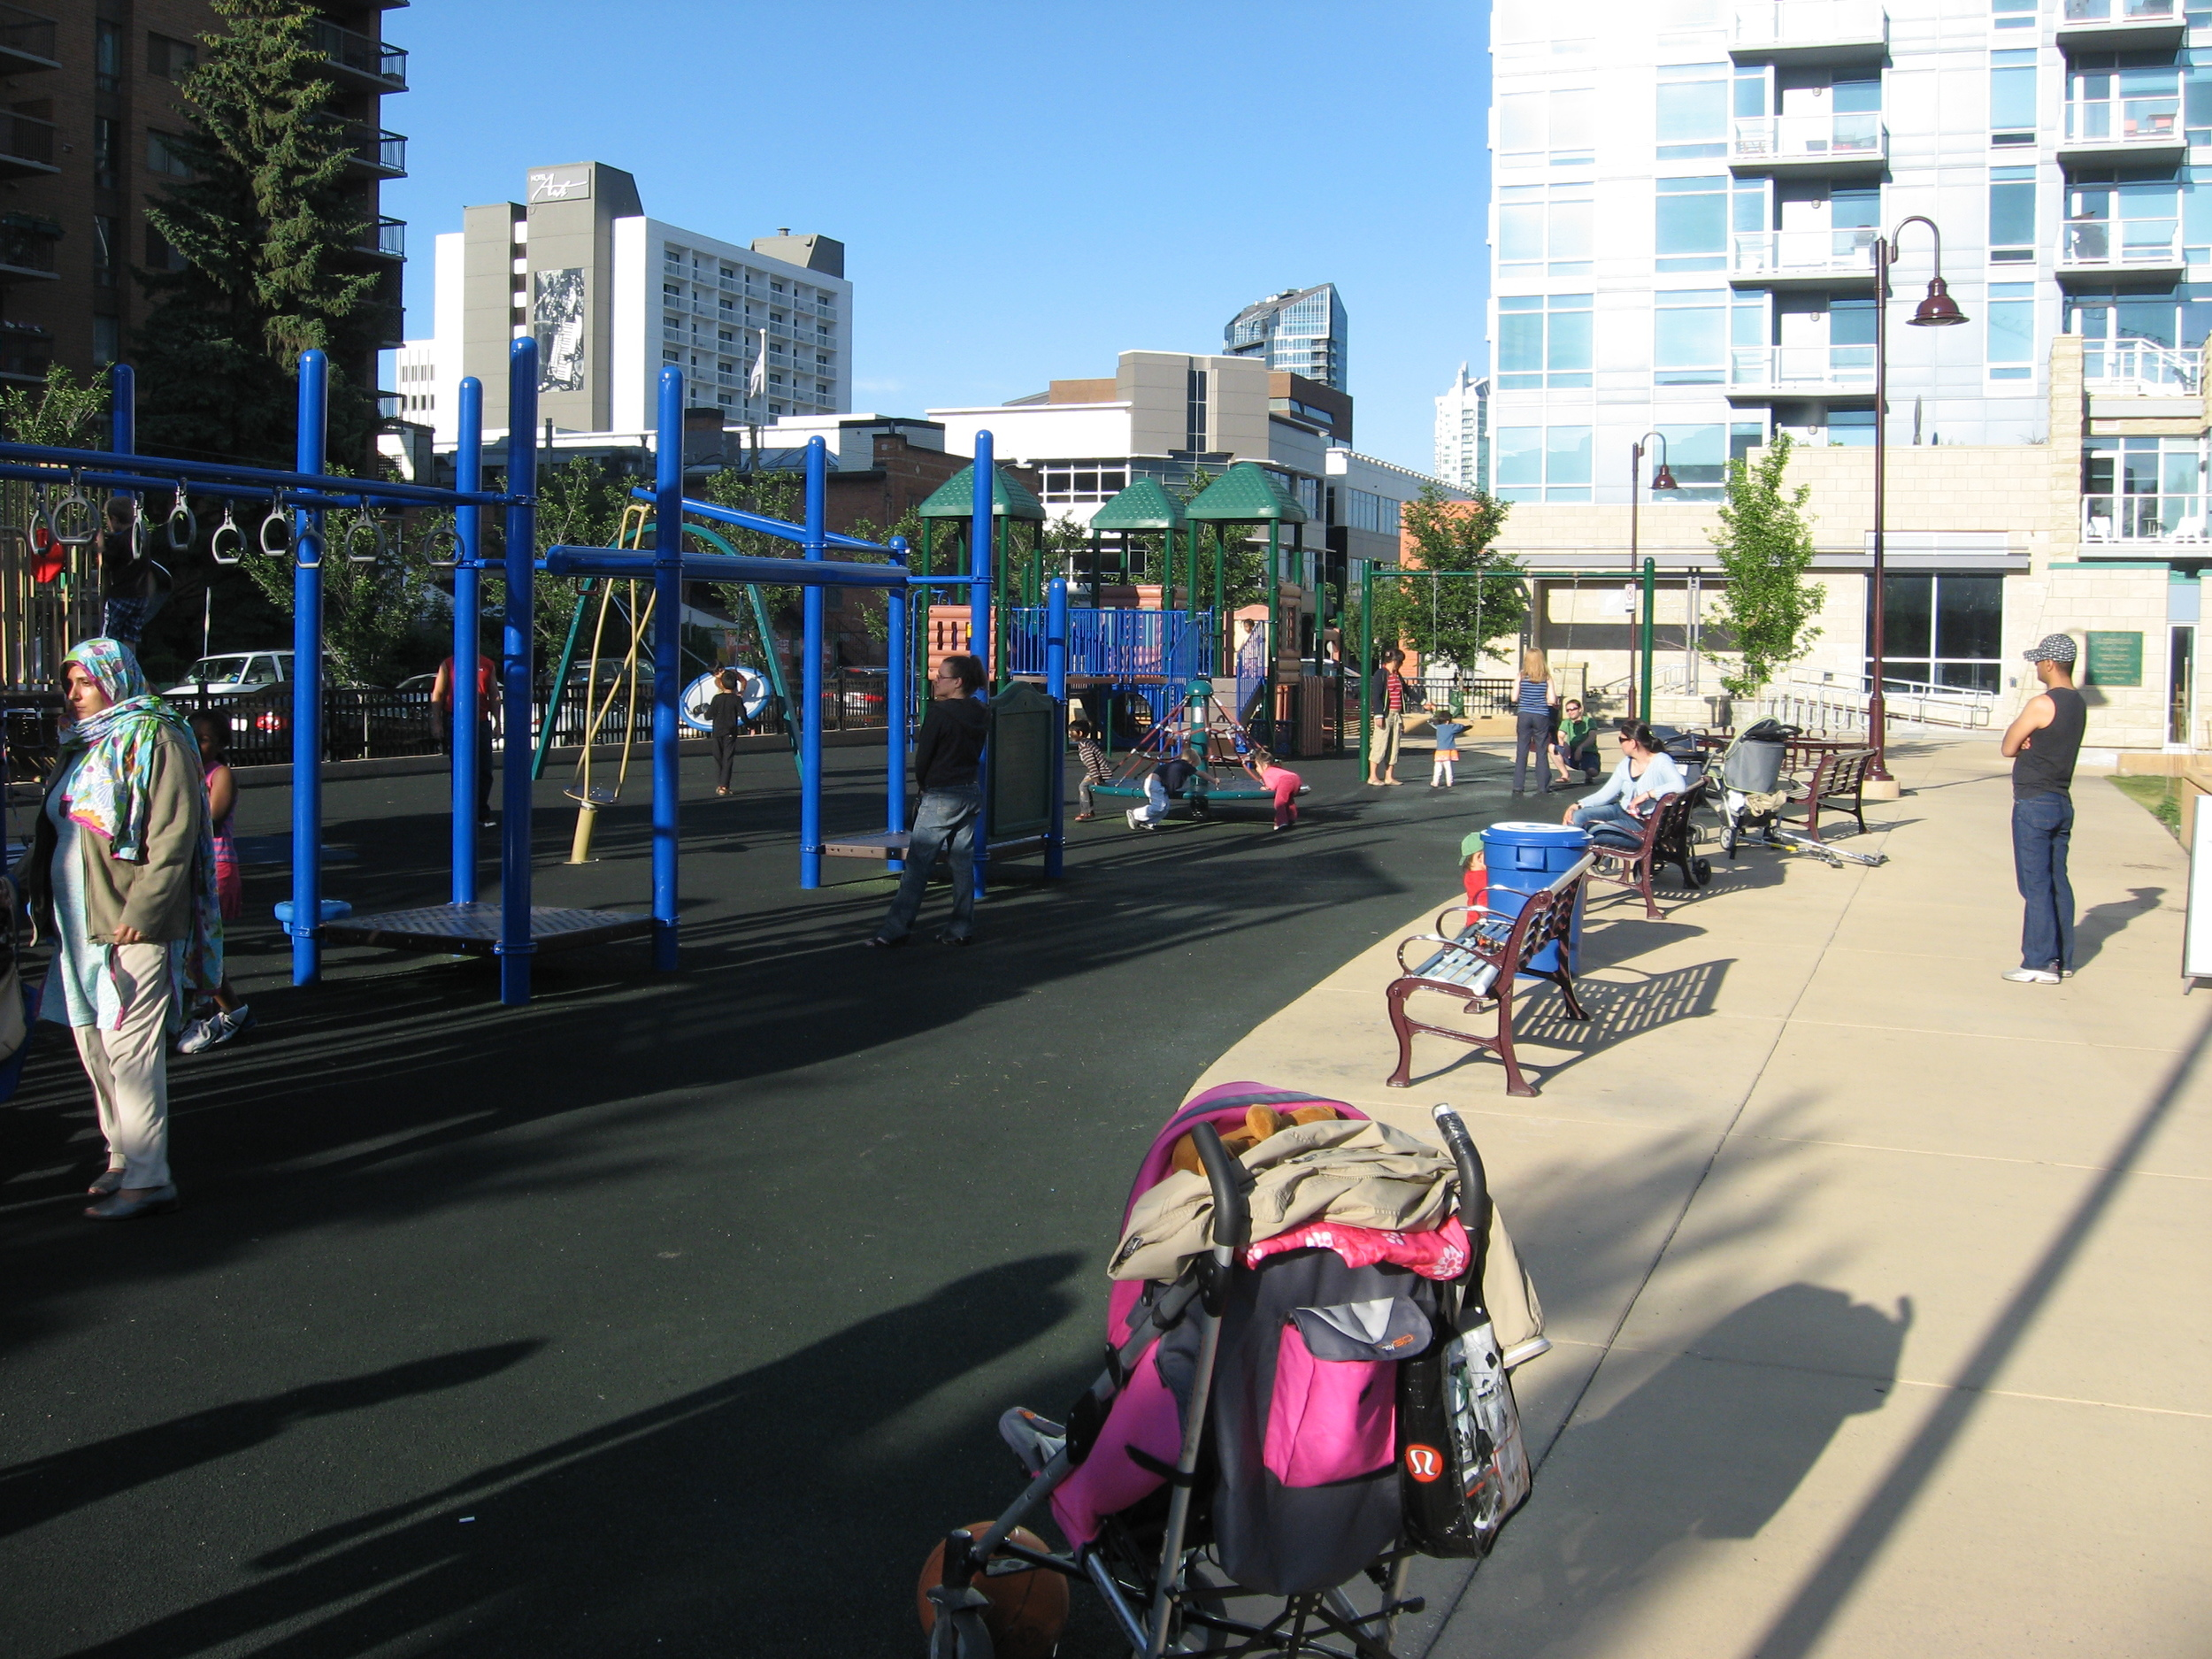 Who says Calgary's City Centre isn't for families? The Beltline's Haultain Park is full of families using the playground, tennis courts and the playing field for a pick-up game of soccer.